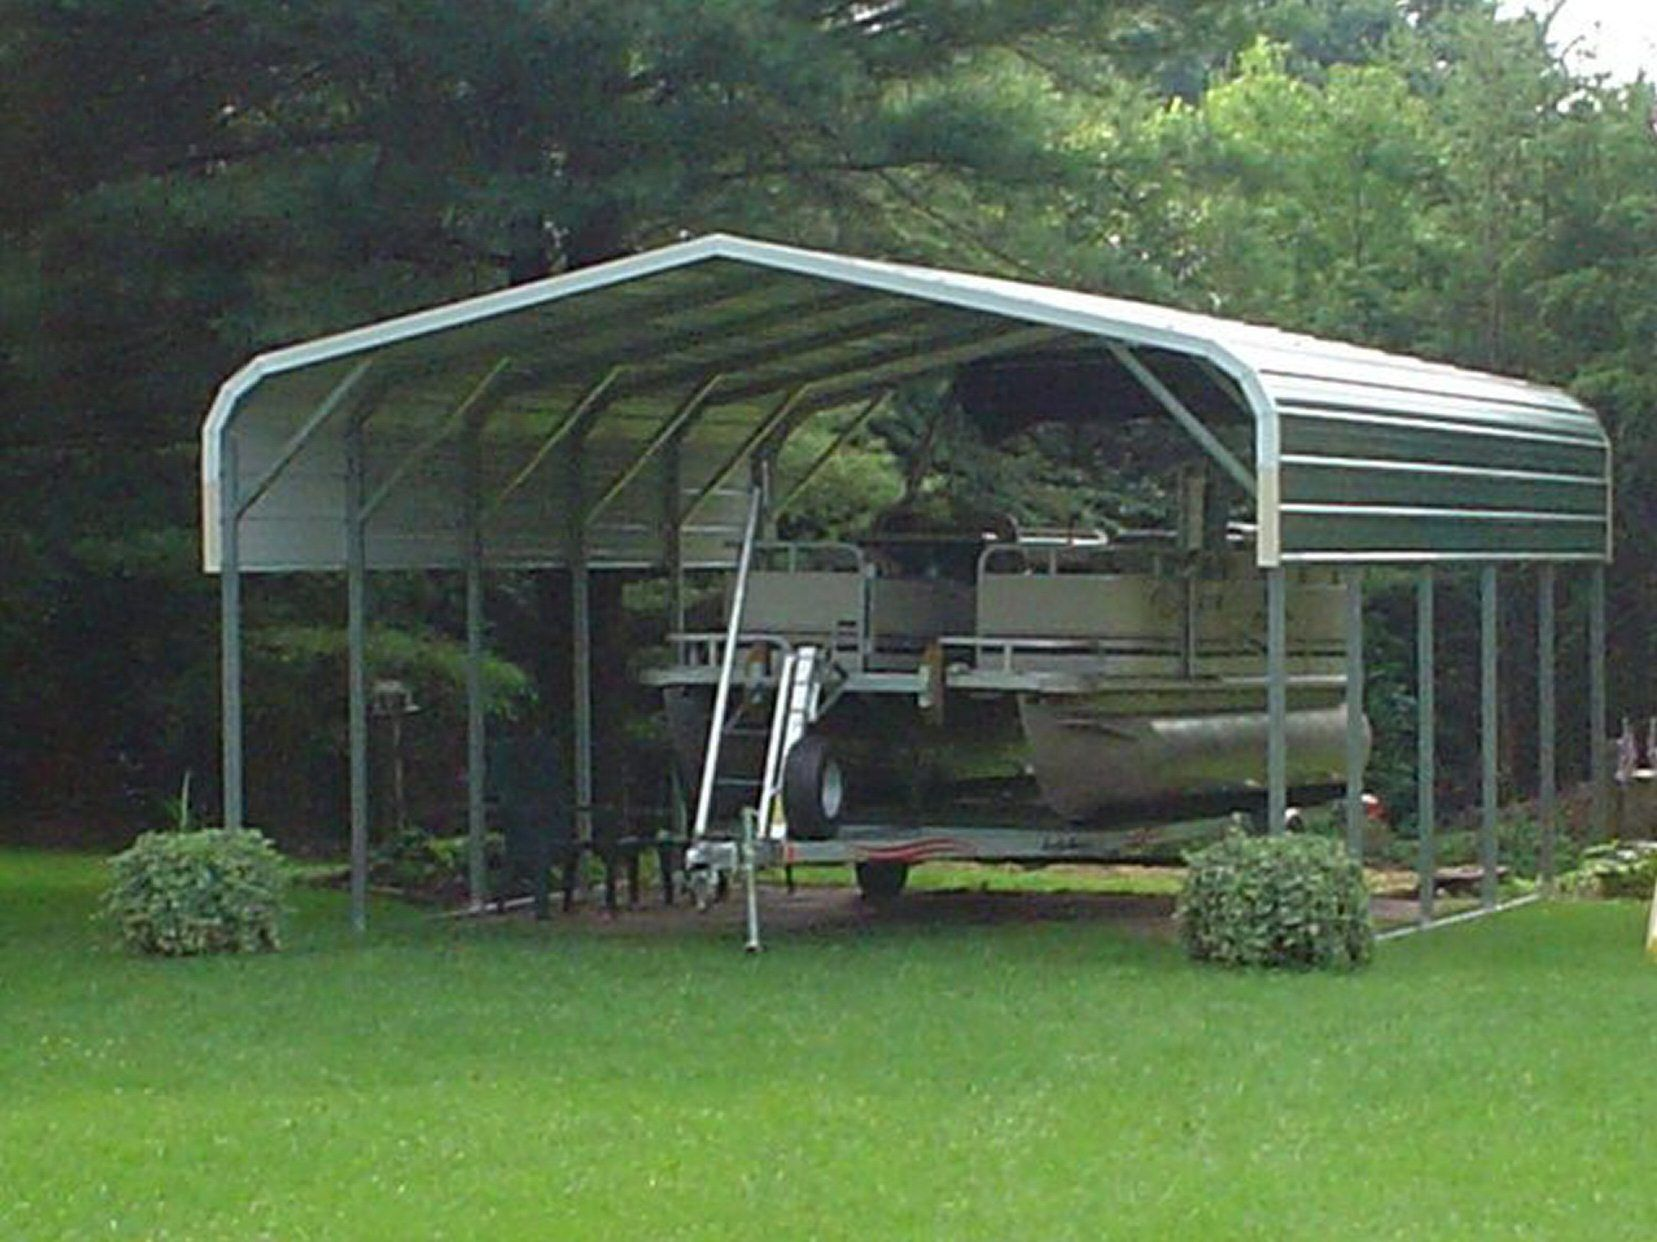 Pontoon Boat Metal Carport Awning Cover Covers